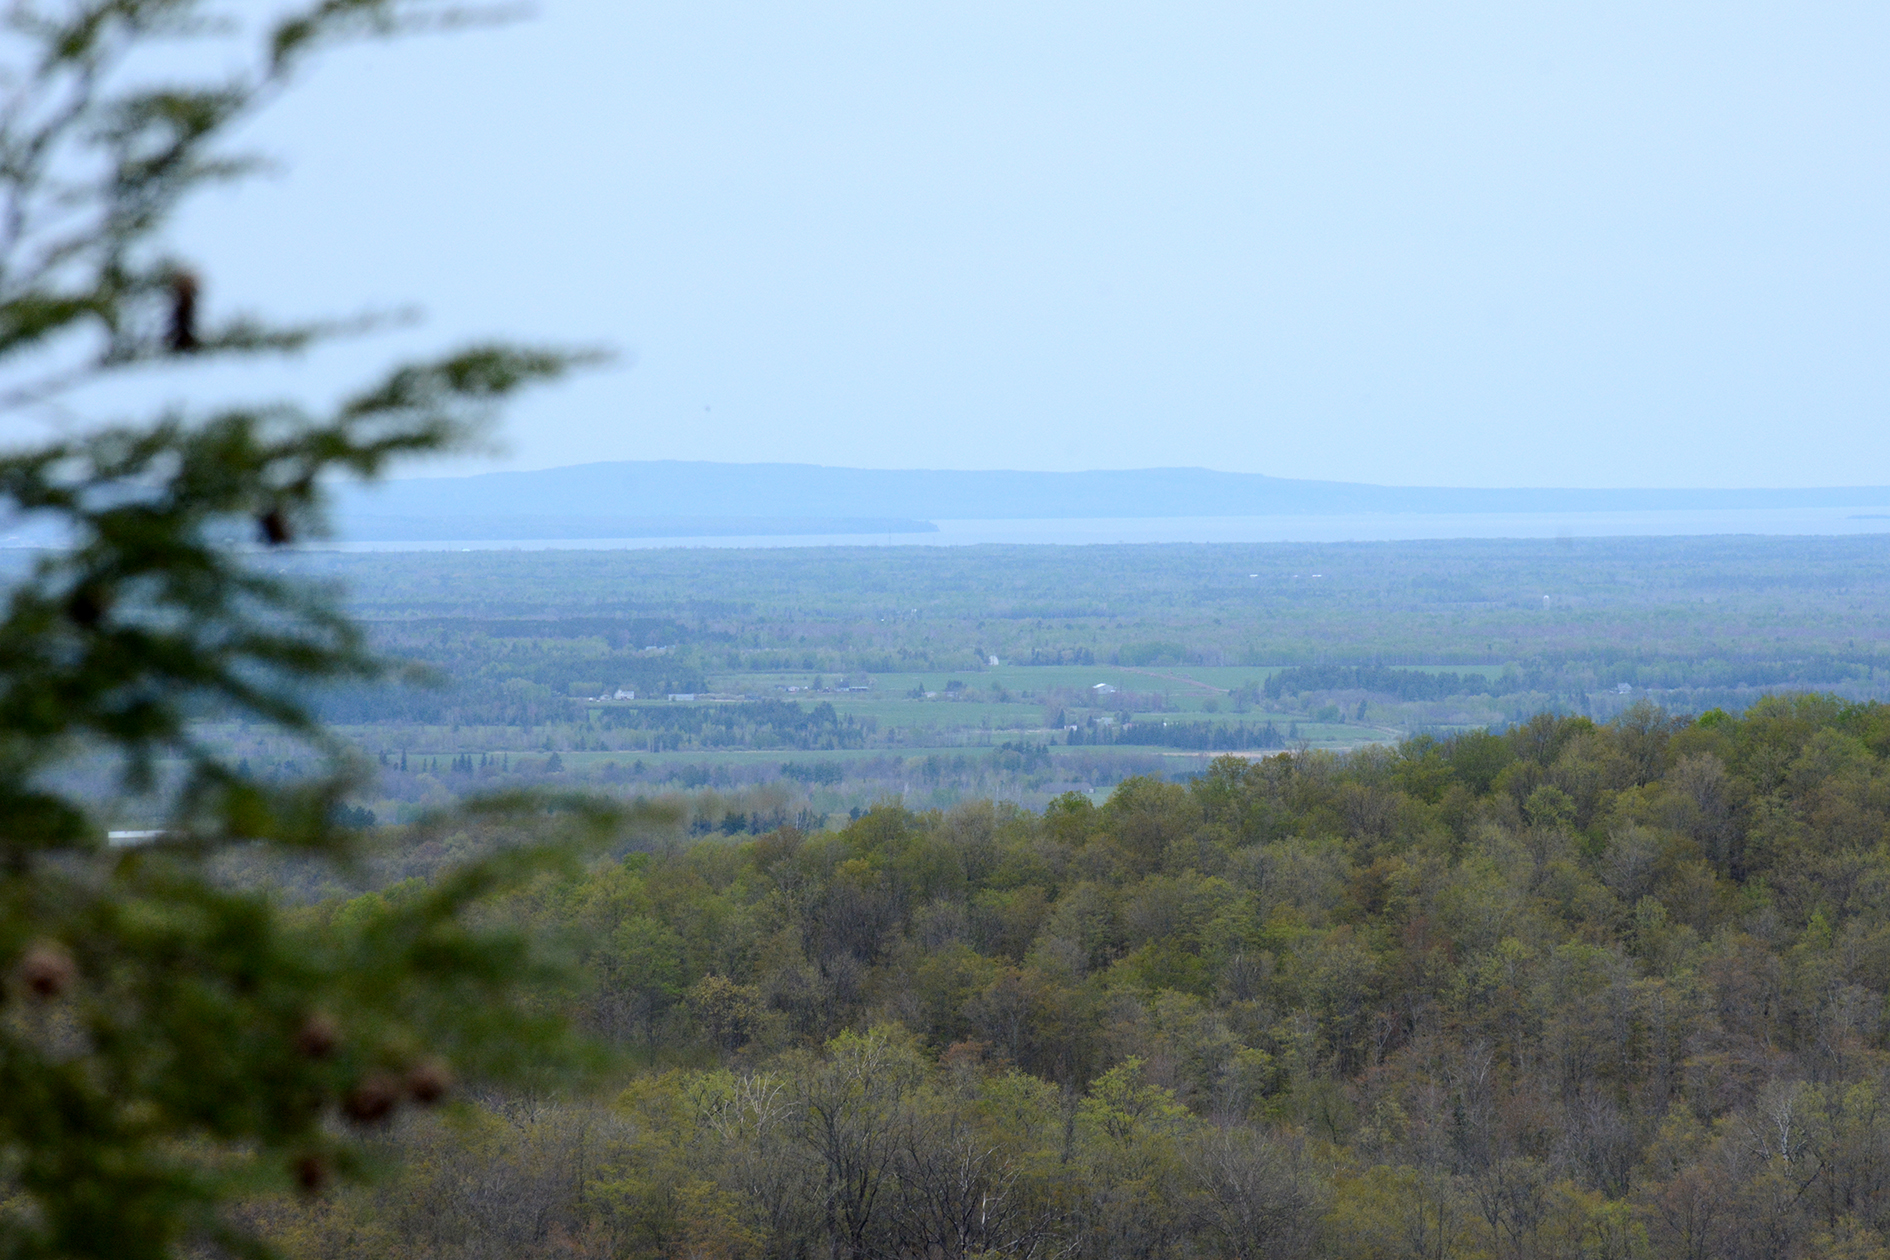 2015-05-14_stpetersdome_overlook1